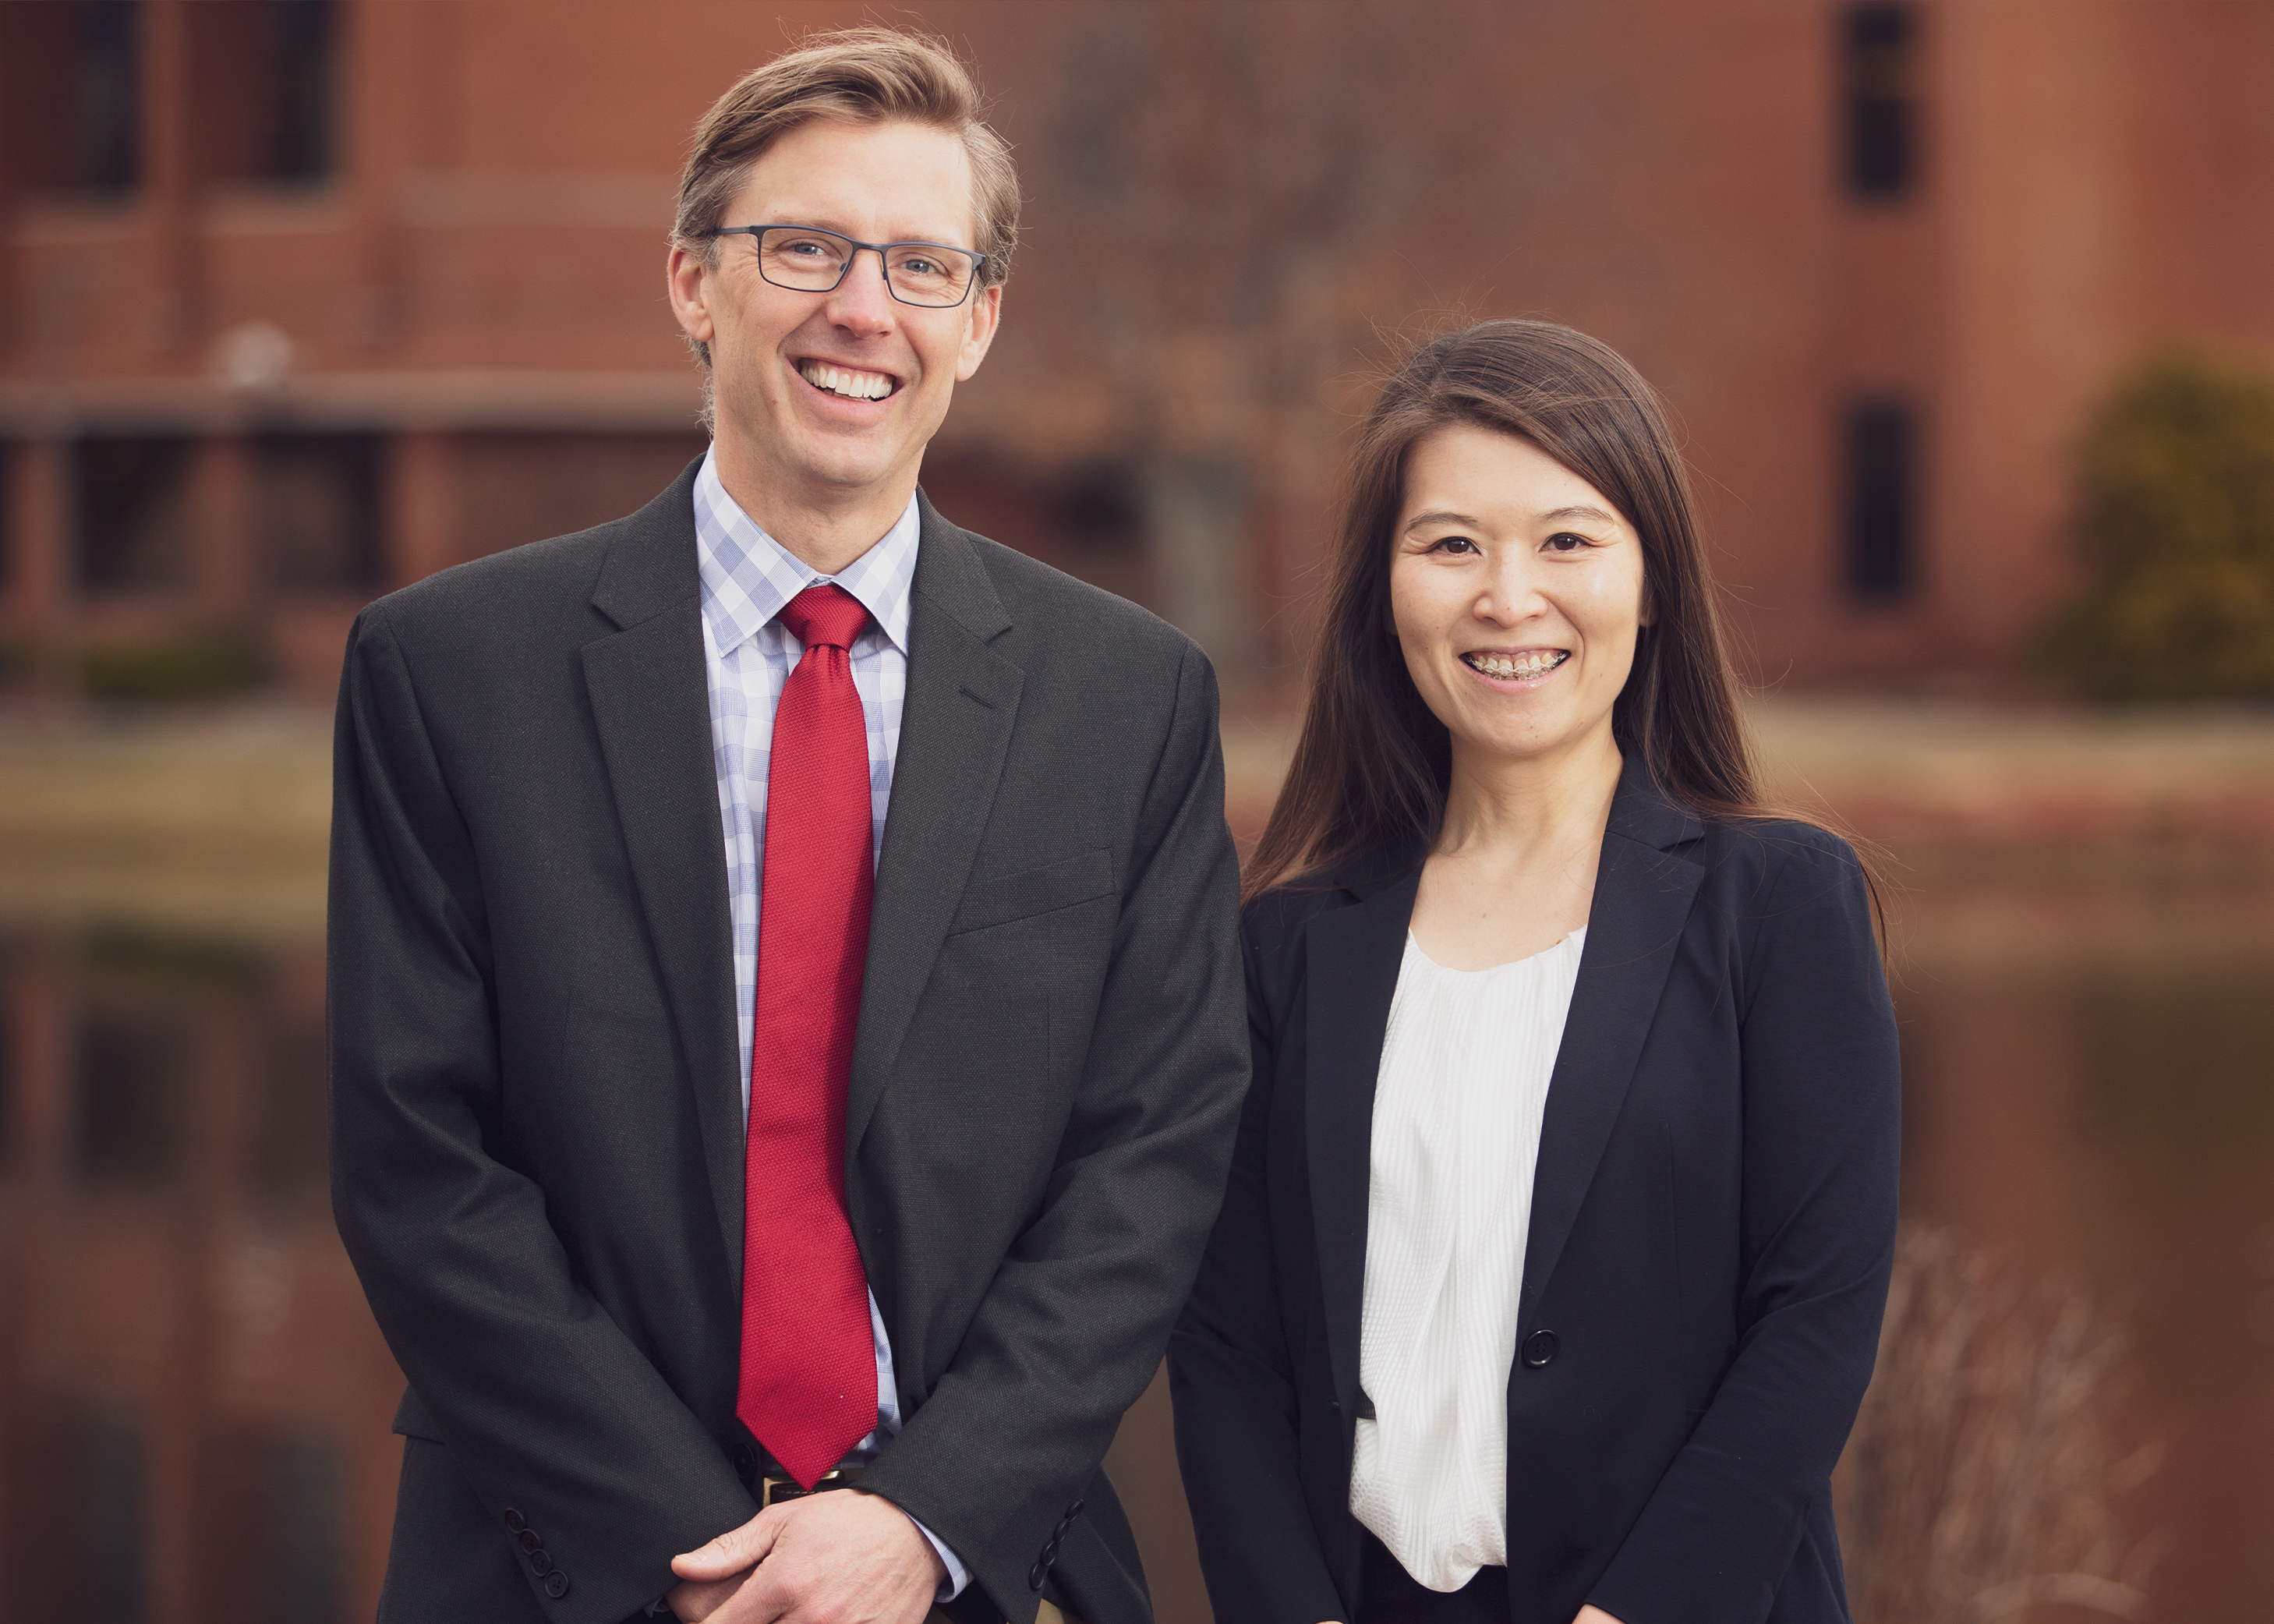 Dr. Devon Evans, Medical Director, Portsmouth, pictured with Dr. Yoko Fukuda